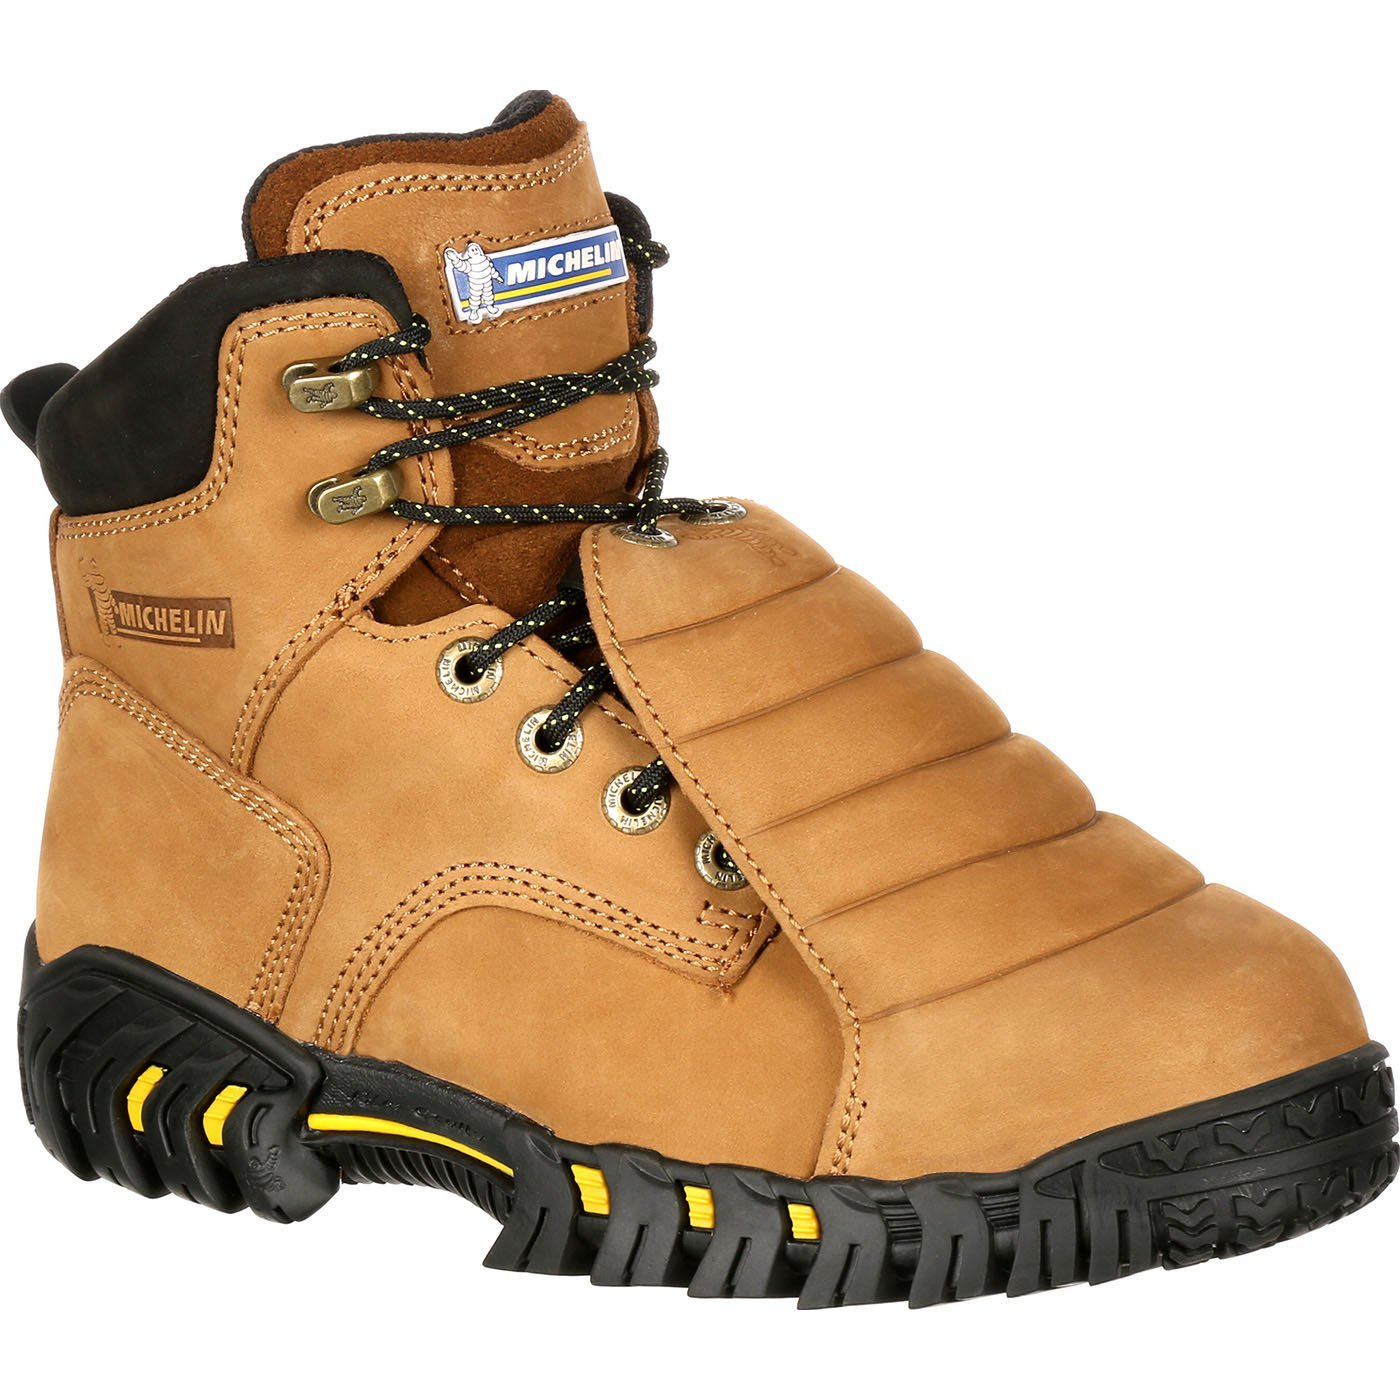 MICHELINXPX761 Work Boots, 8, Medium, Drilex(R), Brown, PR by Michelin